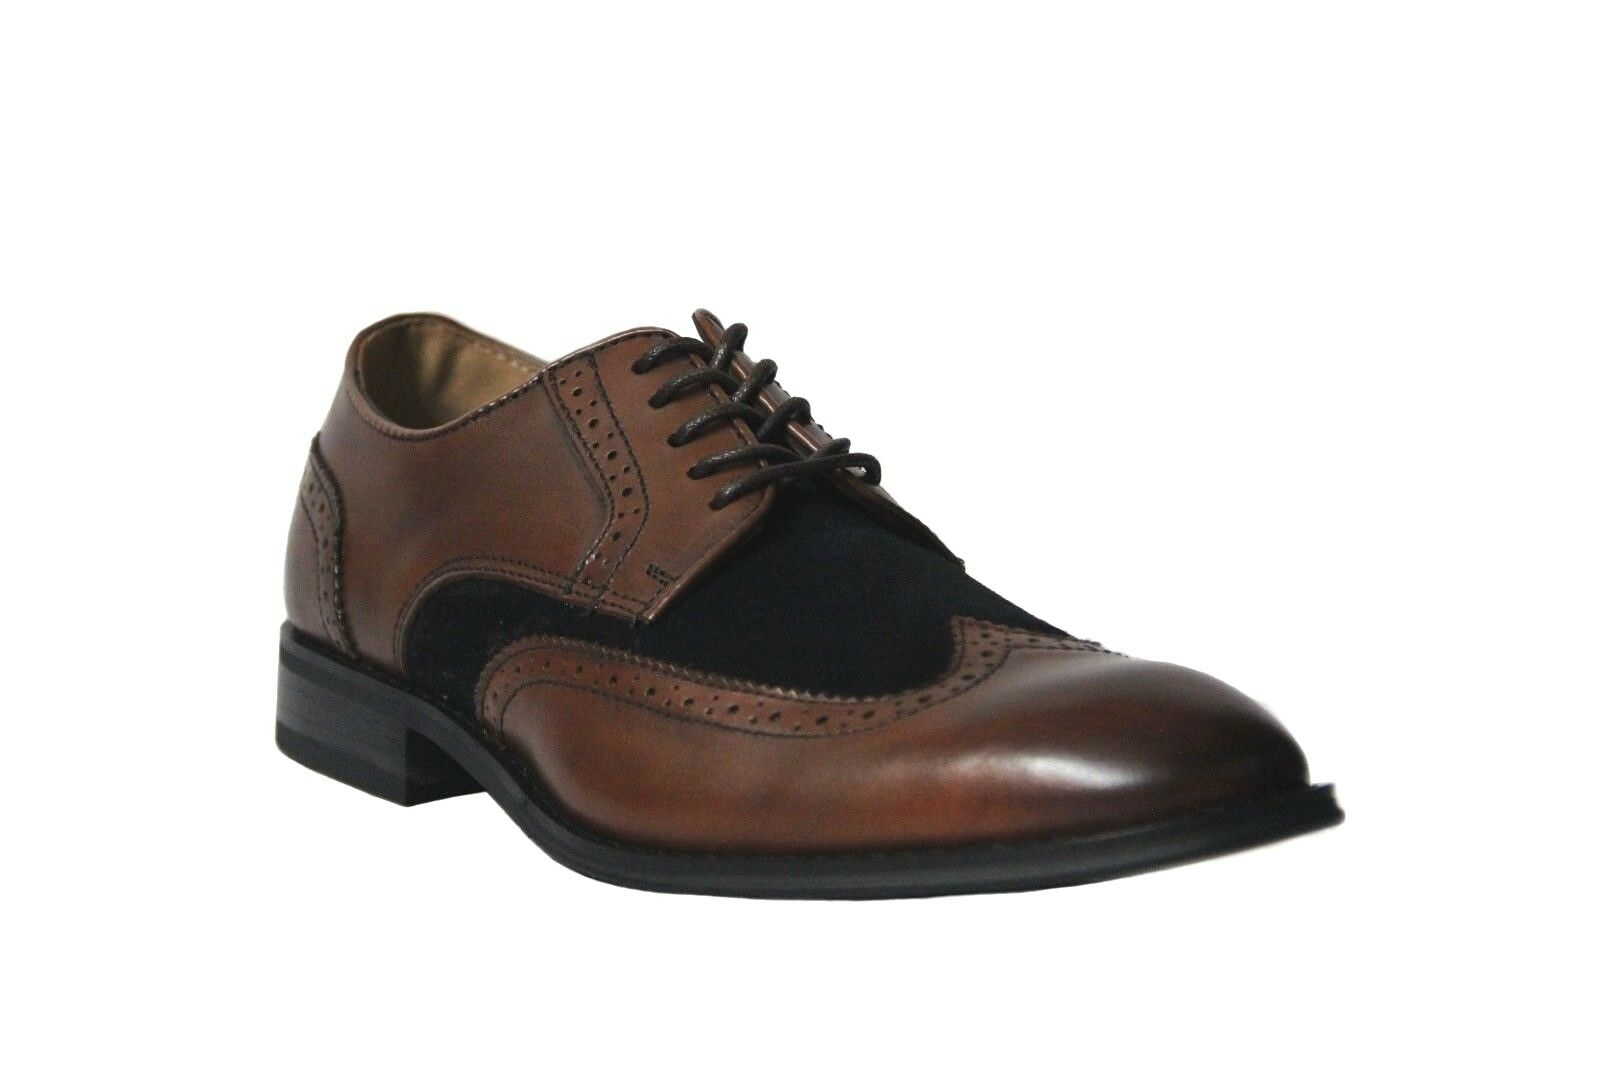 La Milano Men's Brown Navy Leather Suede Wing Tip Dress shoes A11408